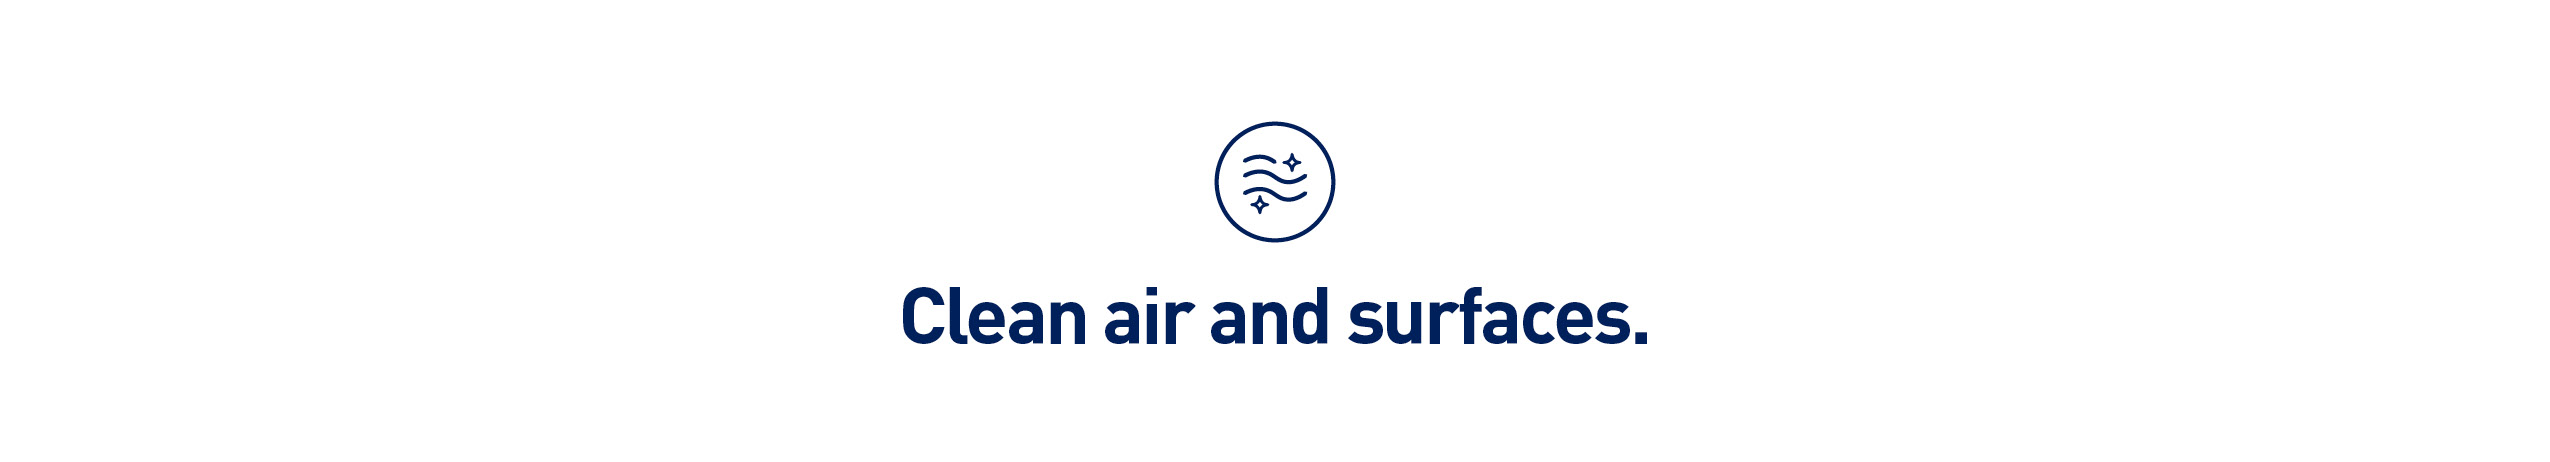 clean air and surfaces